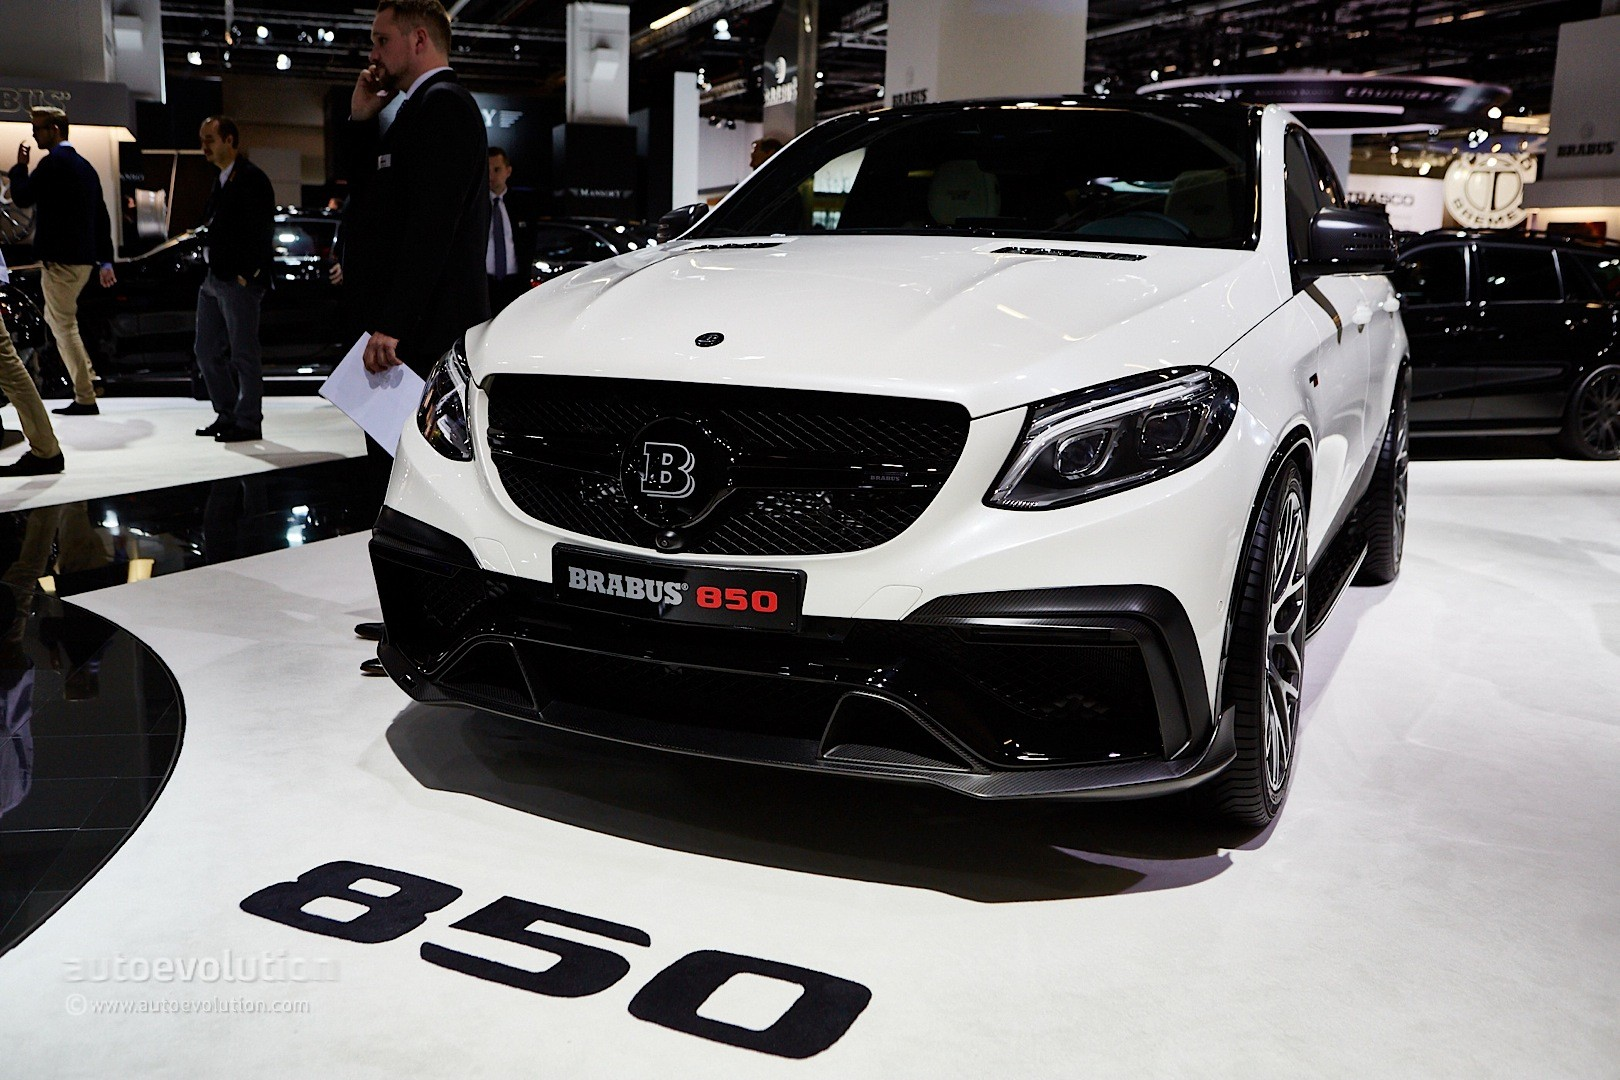 mercedes amg gle 63 coupe by brabus has 850 hp mercedes gle forum. Black Bedroom Furniture Sets. Home Design Ideas